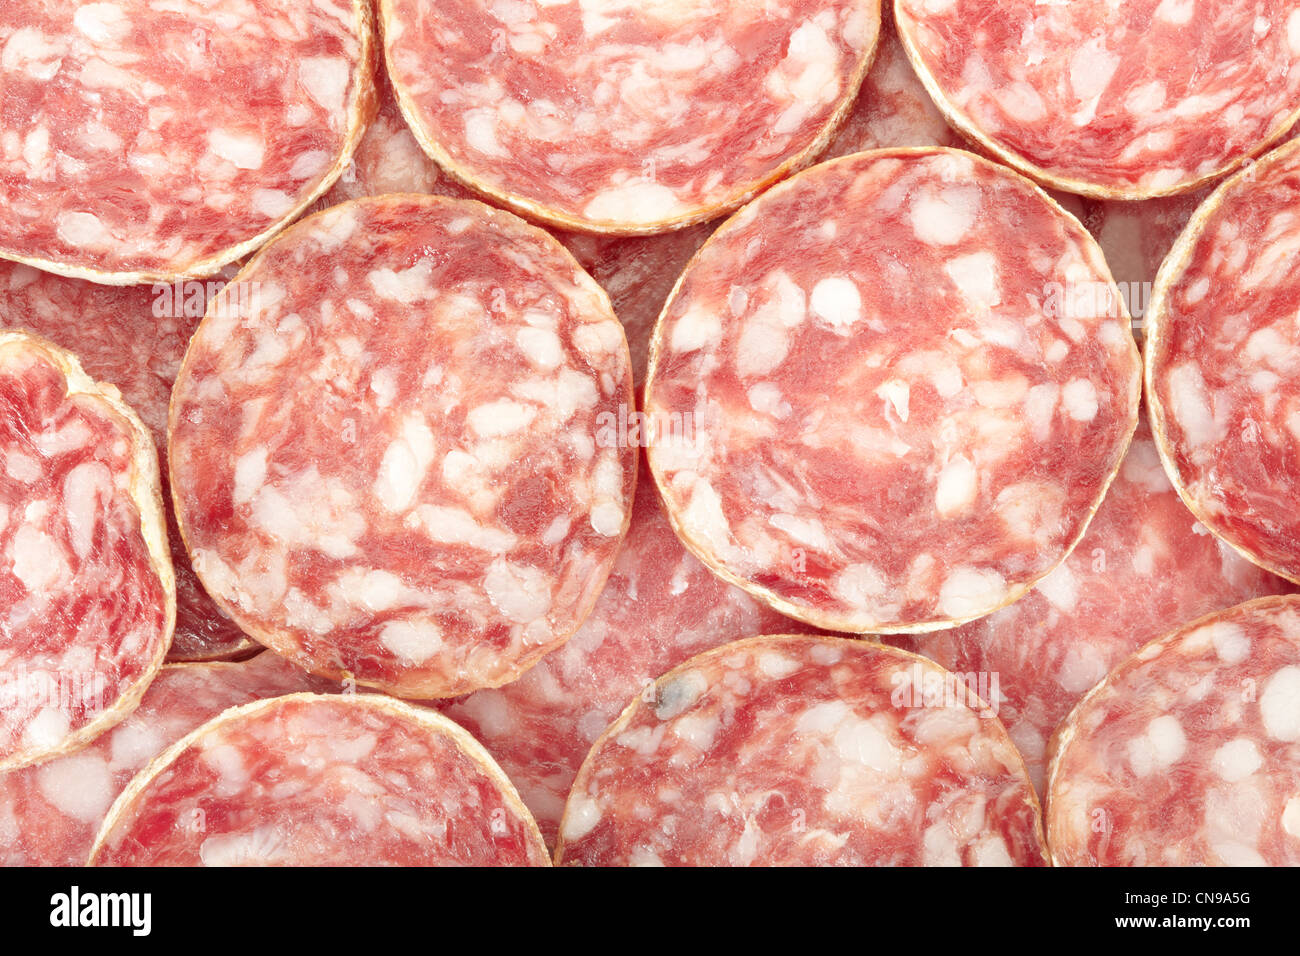 Salami slices texture background - Stock Image